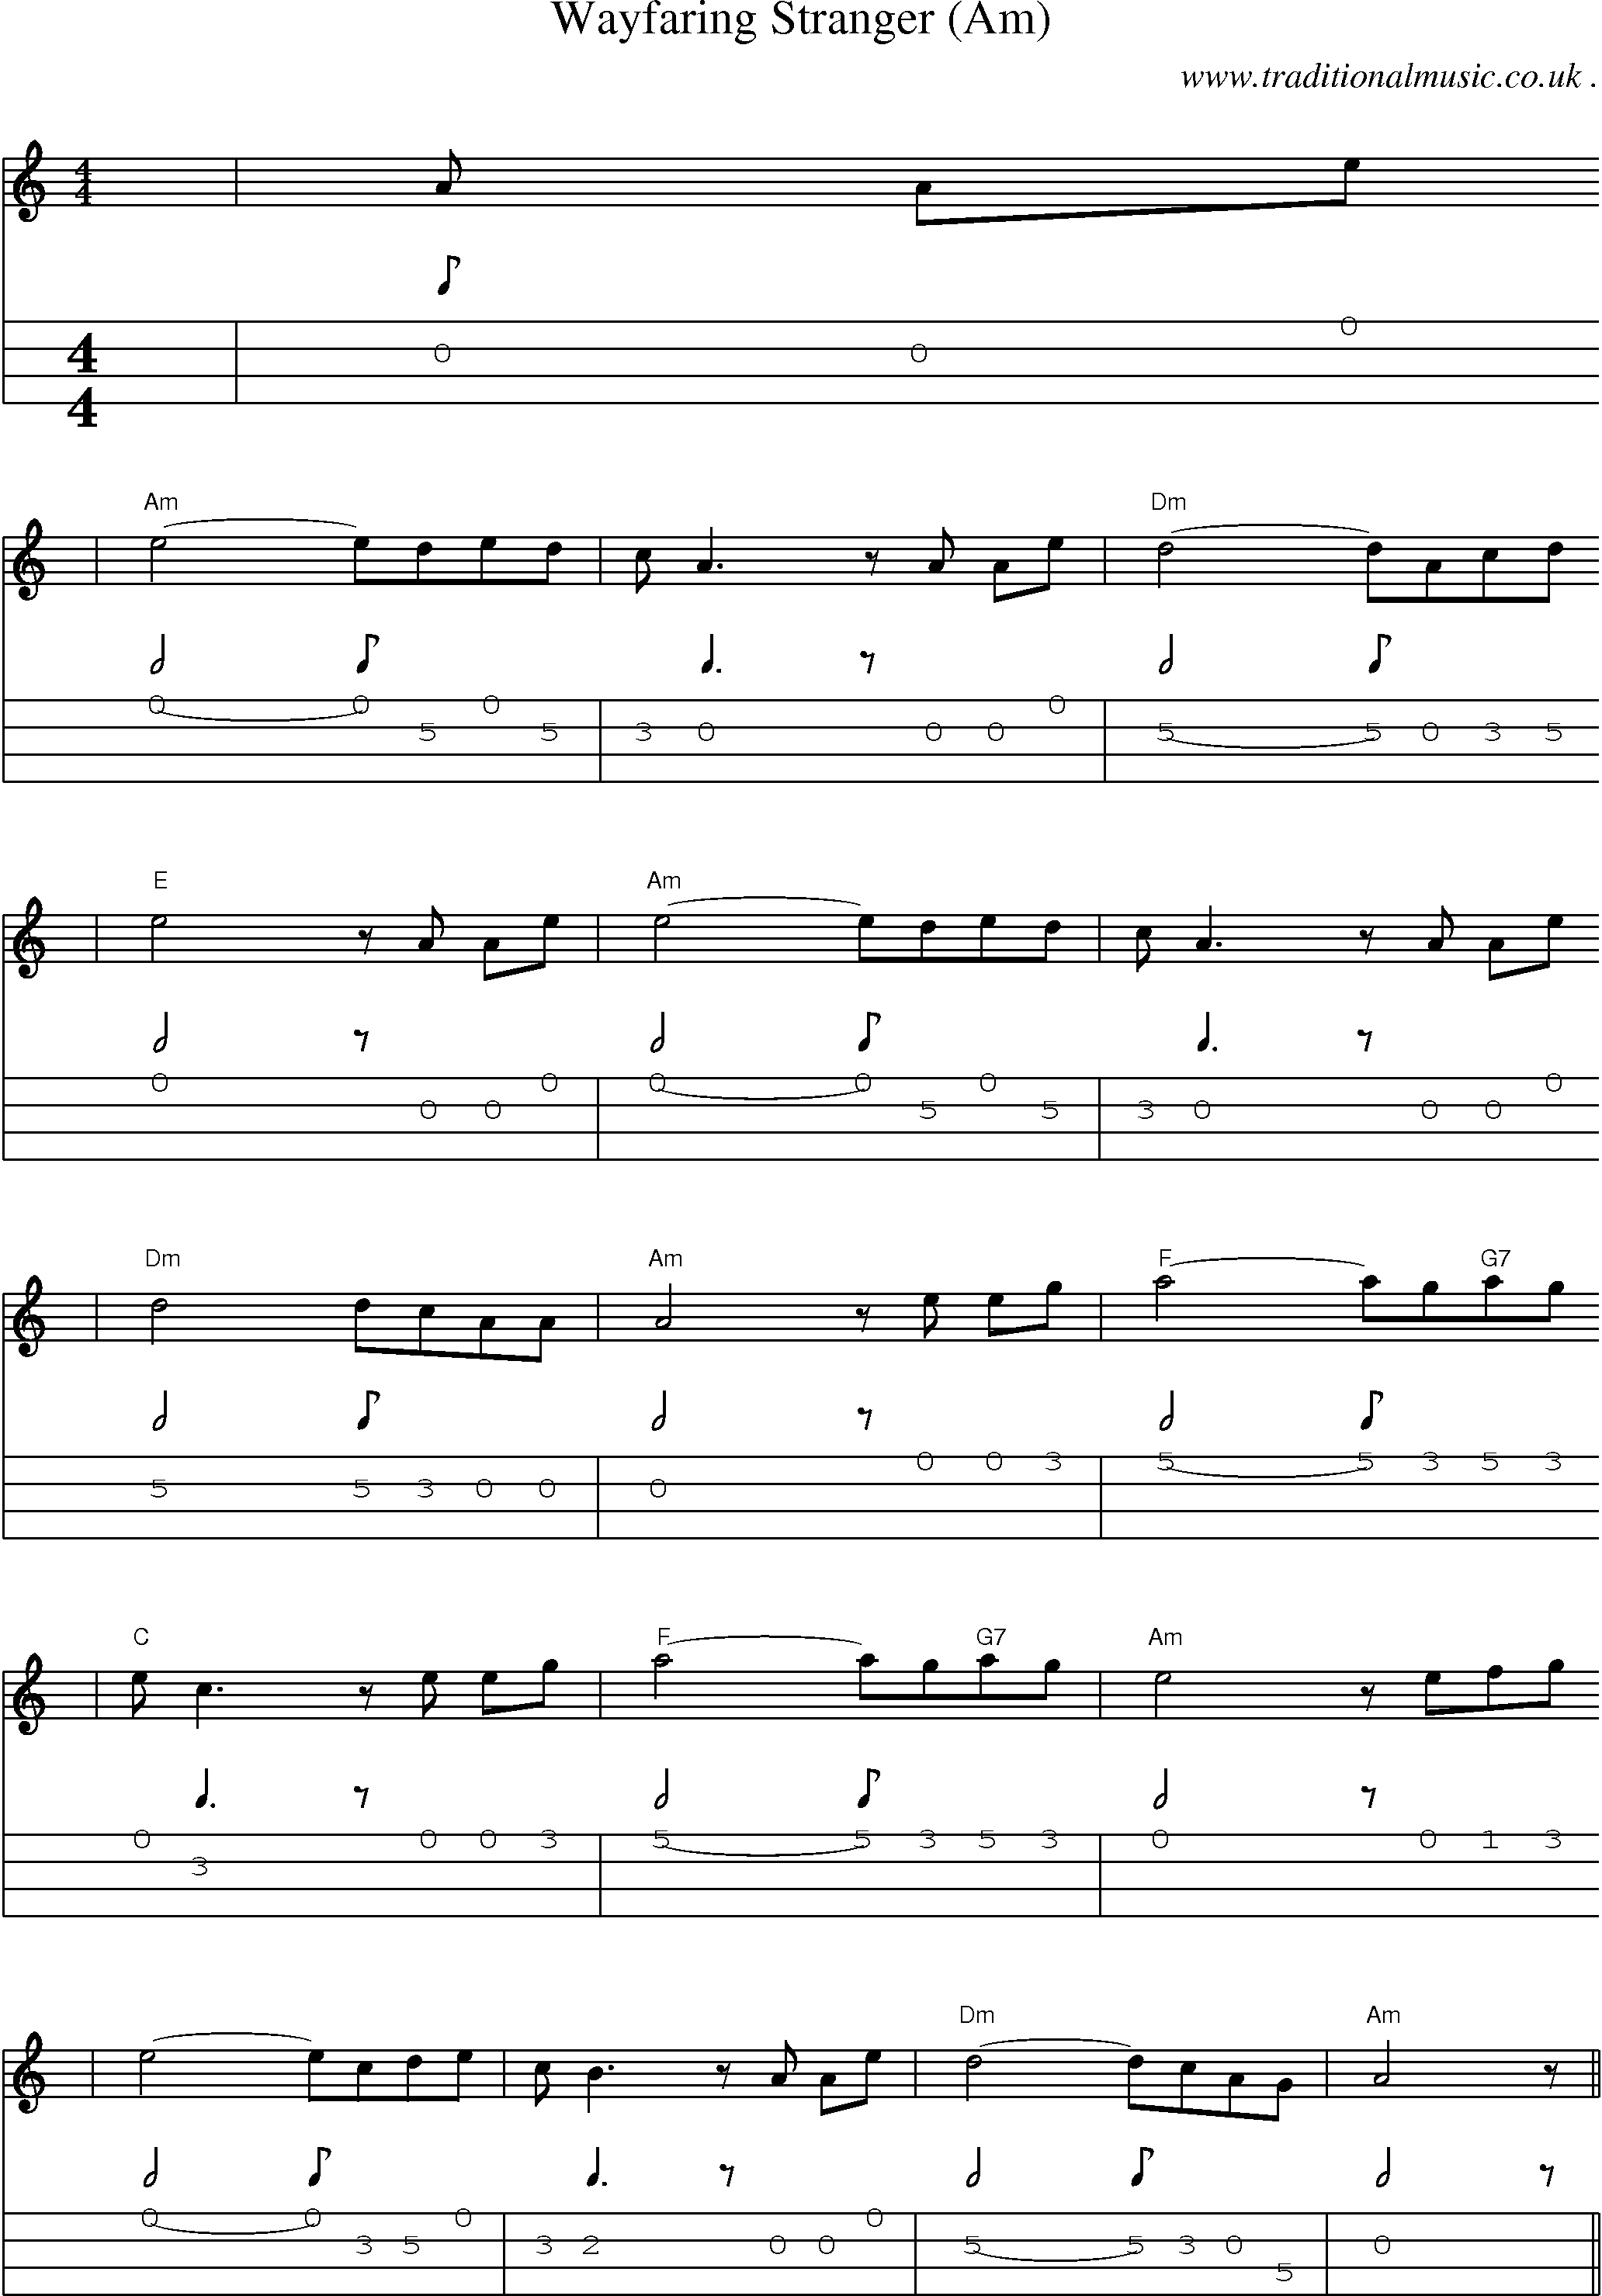 American Old-time music, Scores and Tabs for Mandolin - Wayfaring Stranger (am)